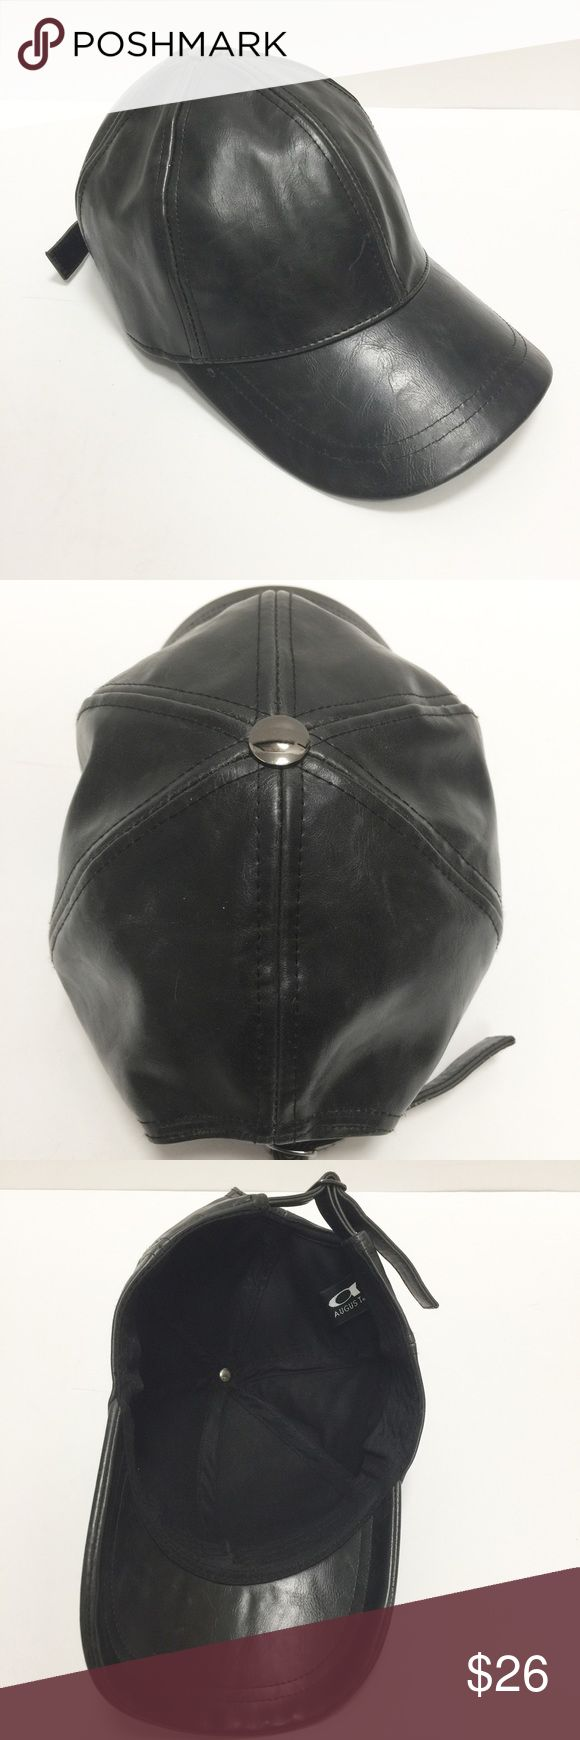 Pleather Baseball Cap Super awesome pleather baseball cap. The faux leather is so good you wouldn't know it is not real leather. It is not soft or flimsy - it is pretty hard and lined with cotton. No stains inside or odd smells. Inside it says it is 100% PU Accessories Hats